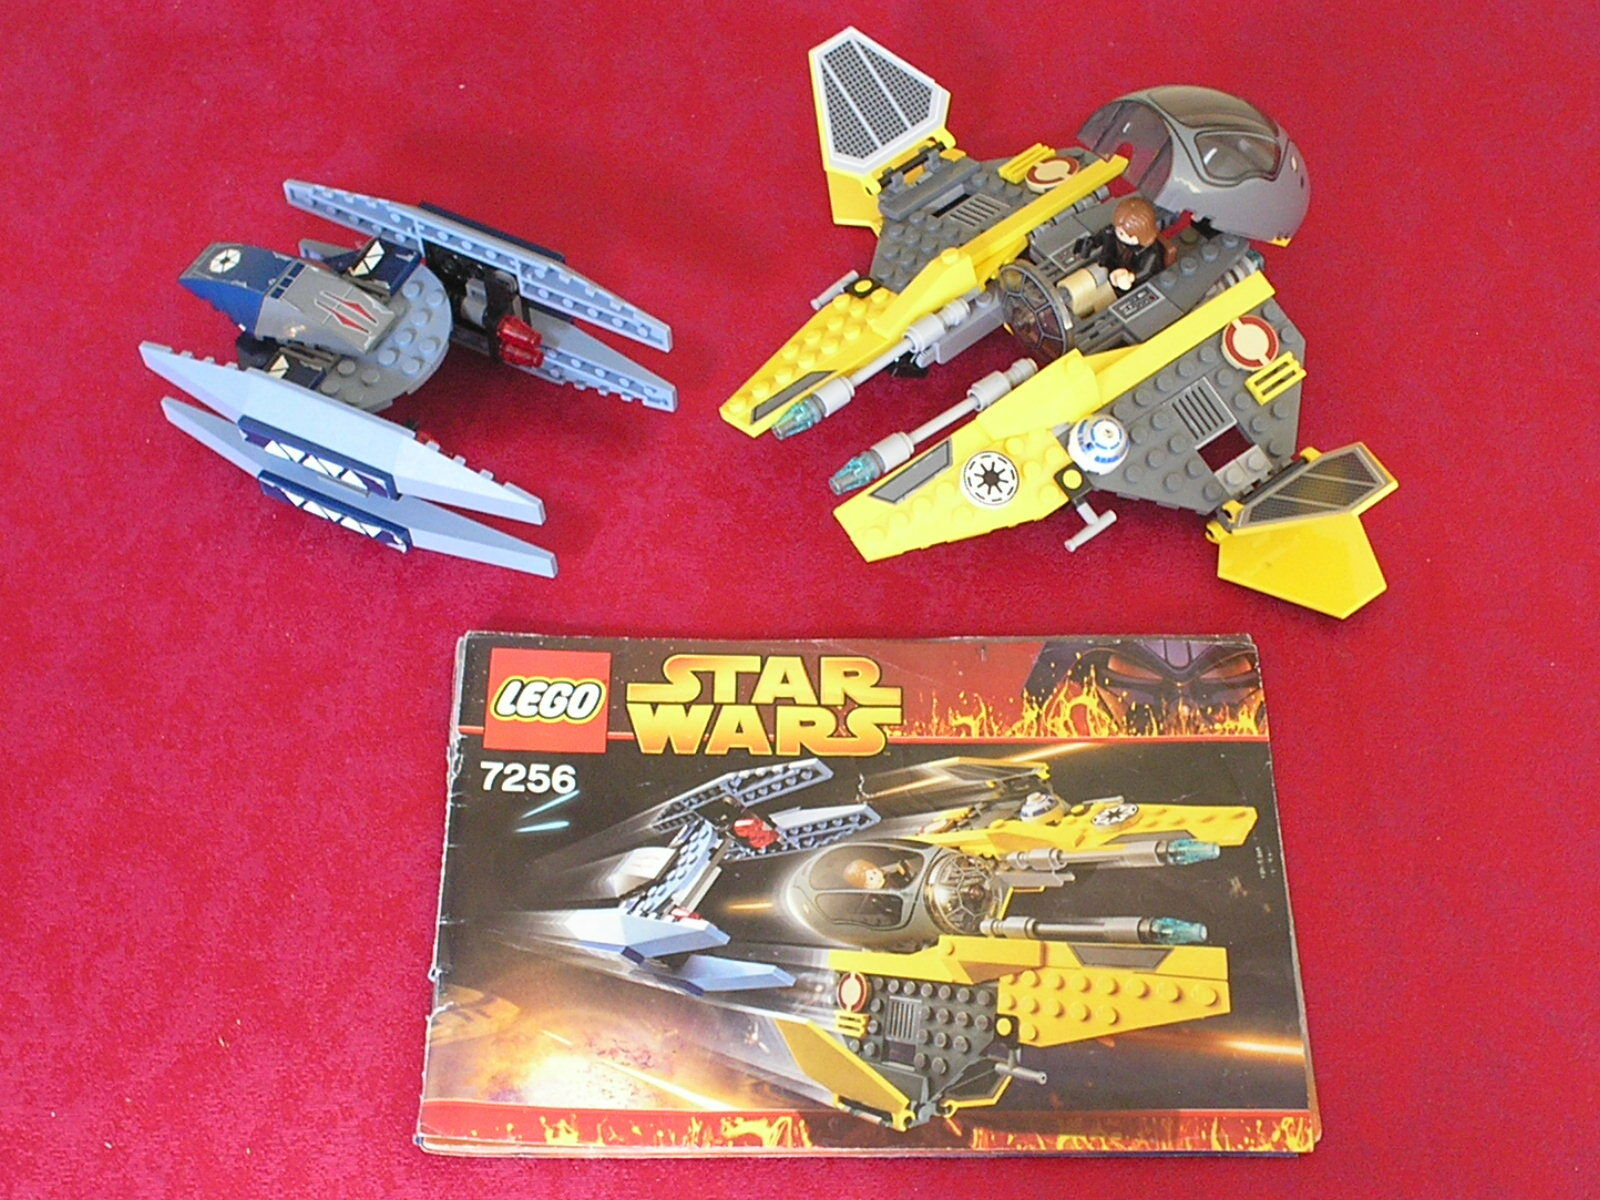 Complete Set LEGO Star Wars 7256 - Jedi Starfighter and Vulture Droid + Minifig